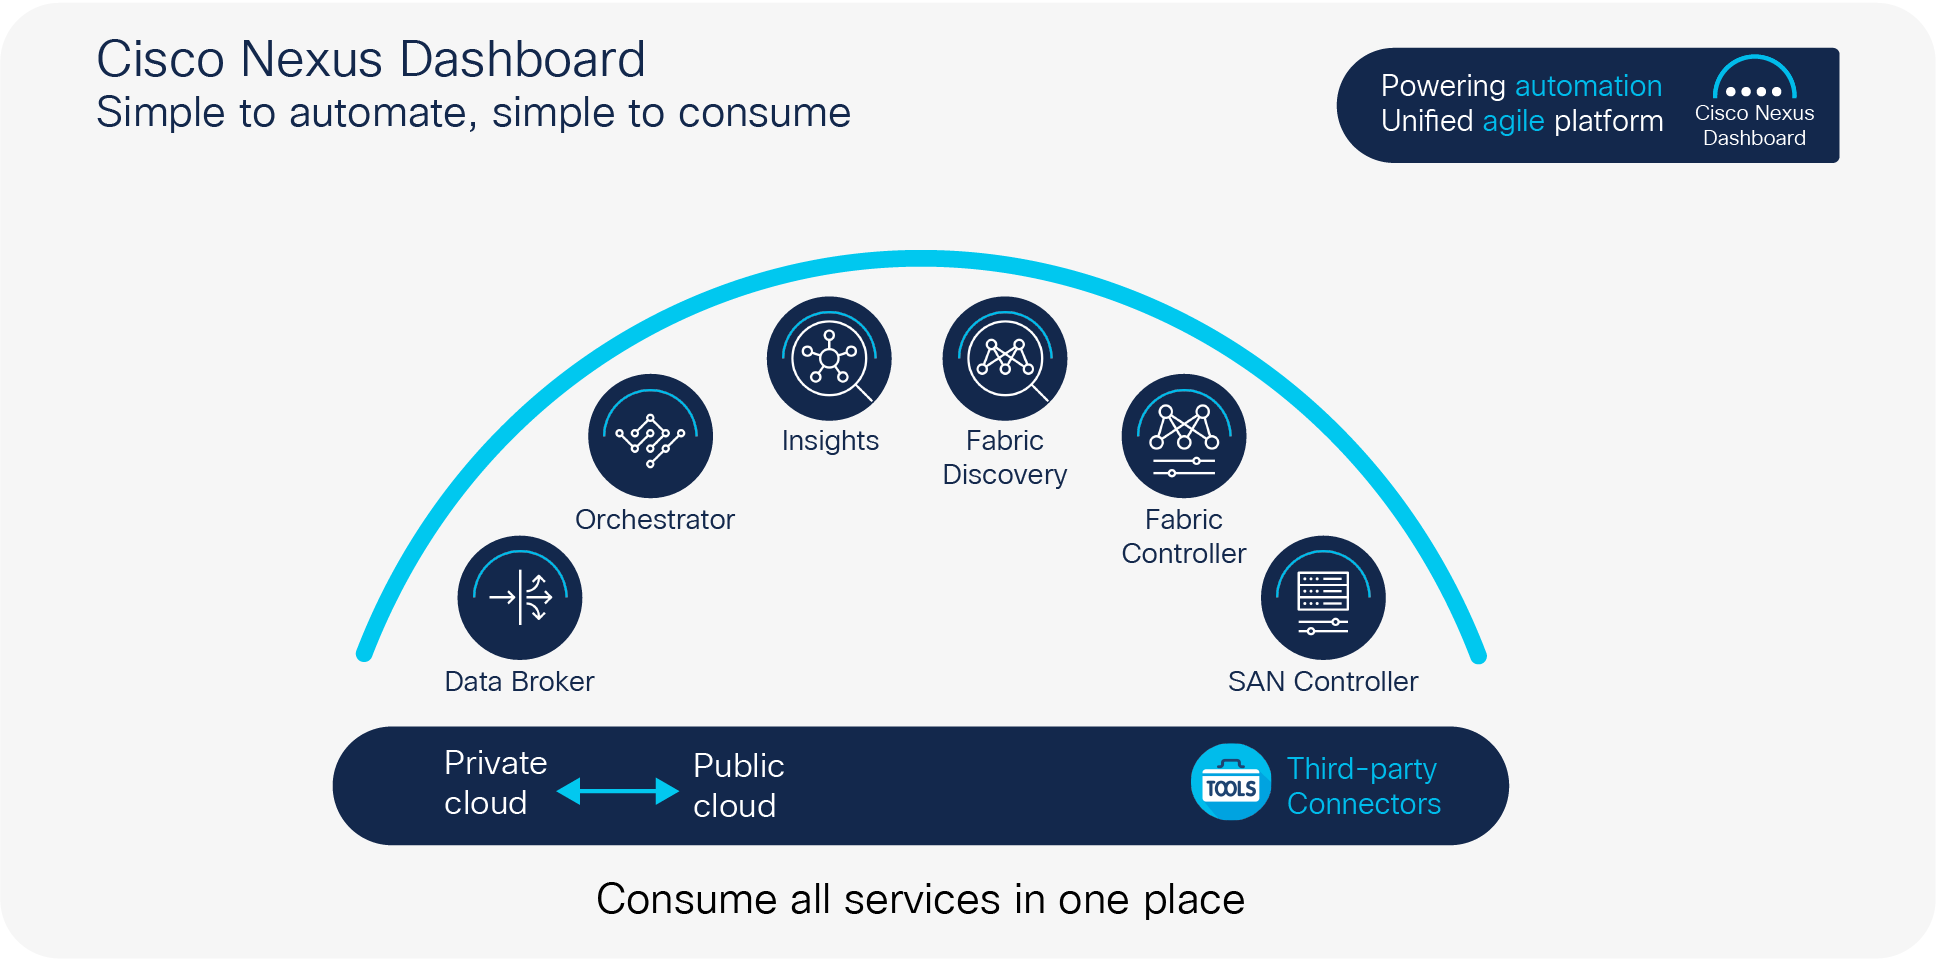 Cisco Nexus Dashboard: Unified operations across all sites and services